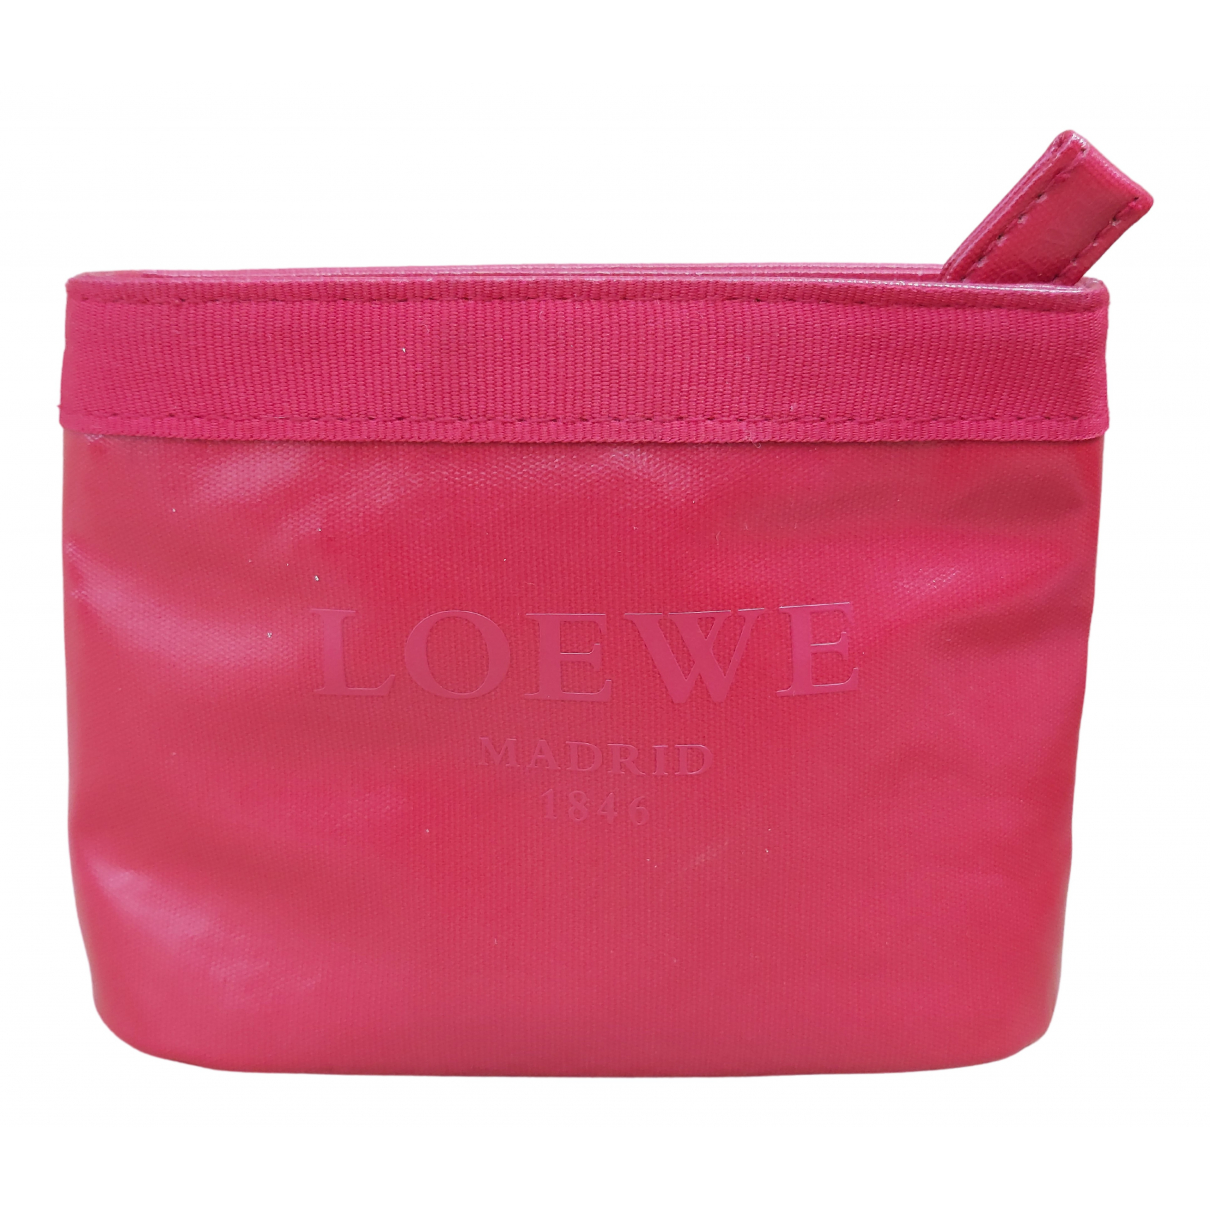 Loewe N Red Leather Purses, wallet & cases for Women N